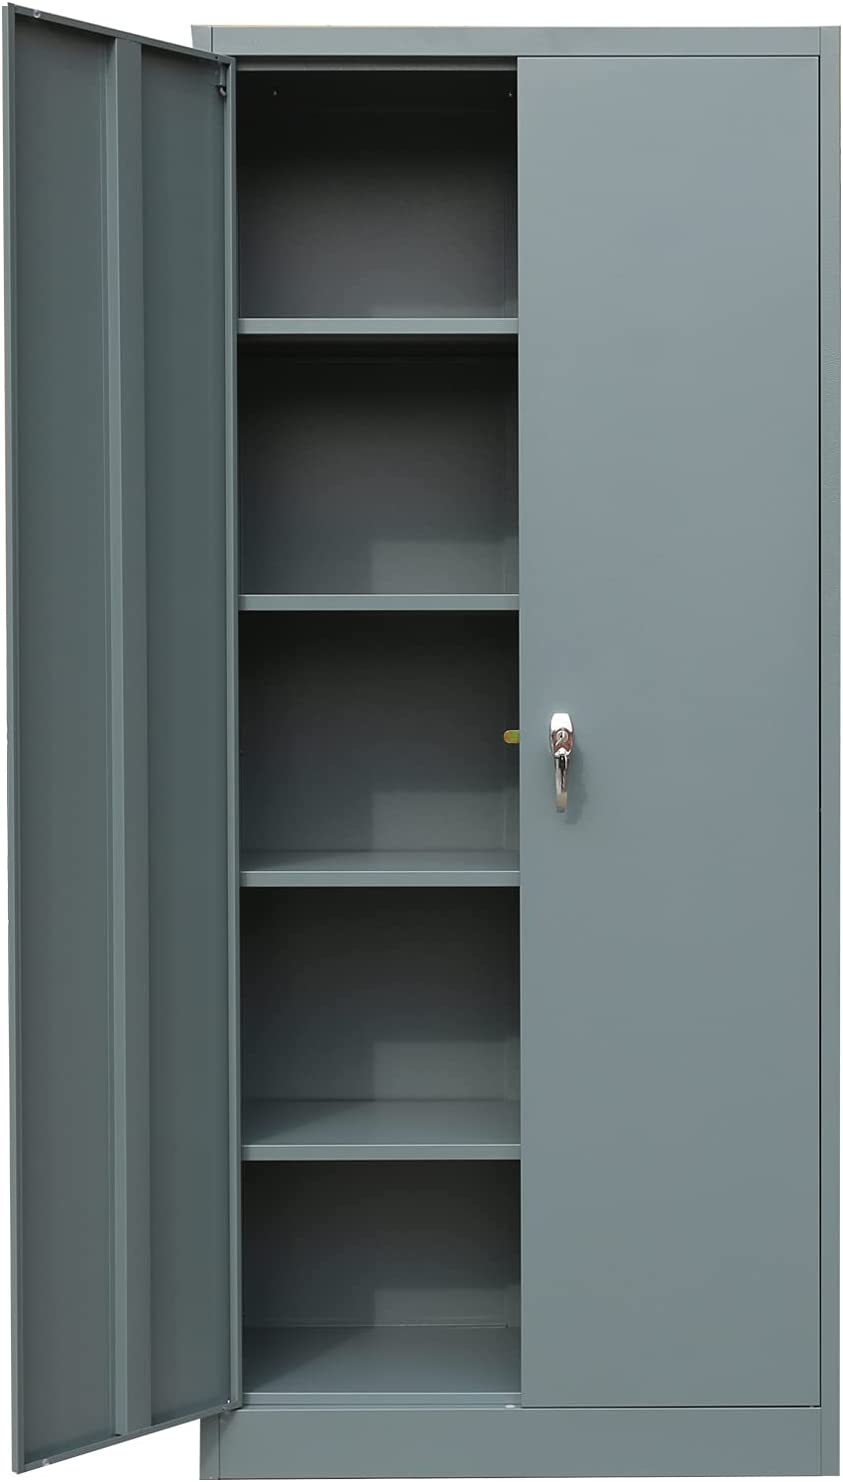 famous BESFUR OFFicial Metal Storage Cabinet with 2 and Shelves Doors Lockabl 4